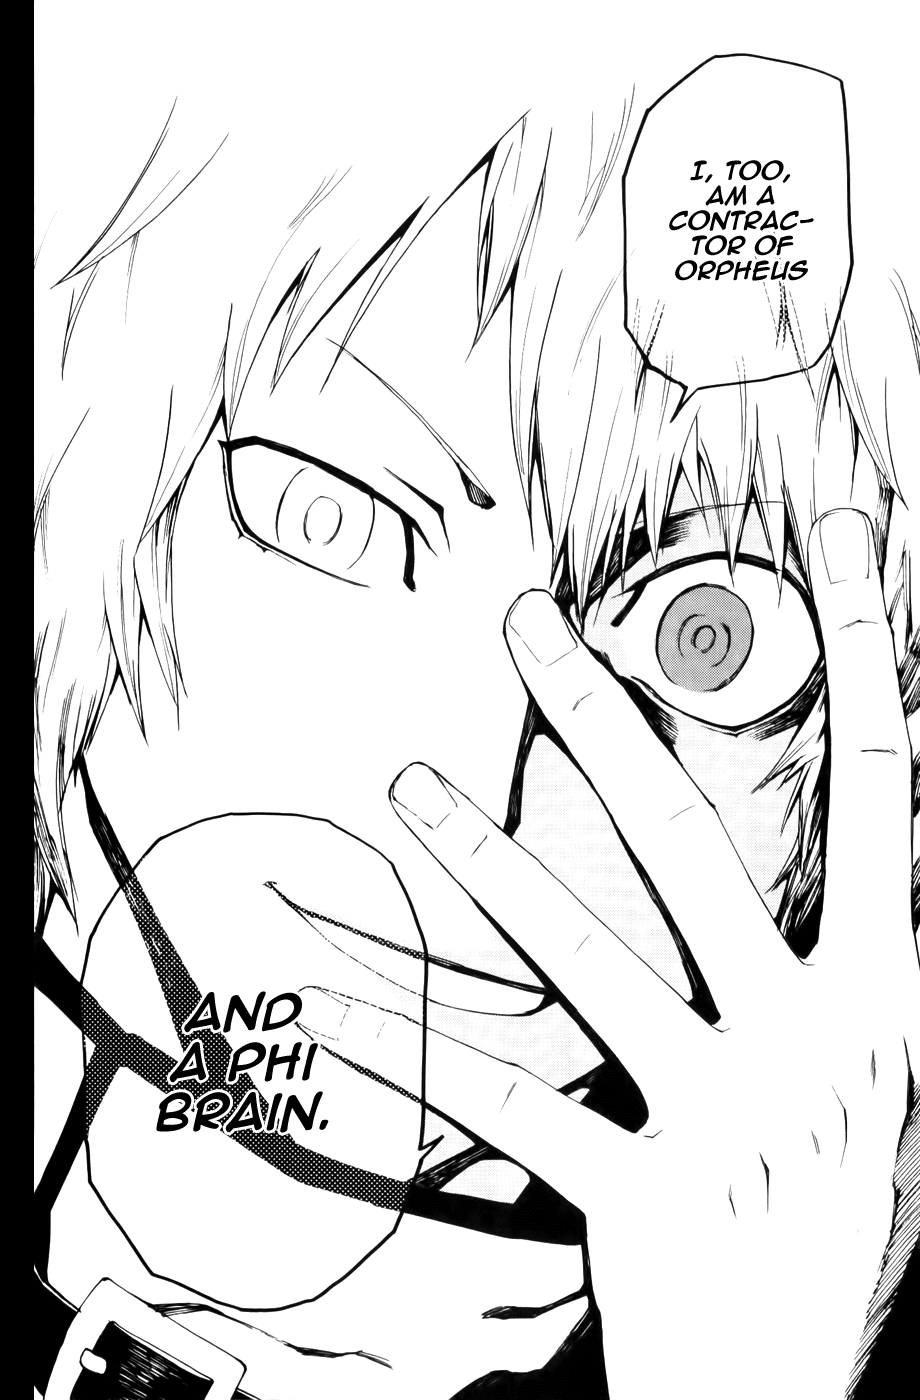 Phi Brain - Kami no Puzzle - Chapter 10